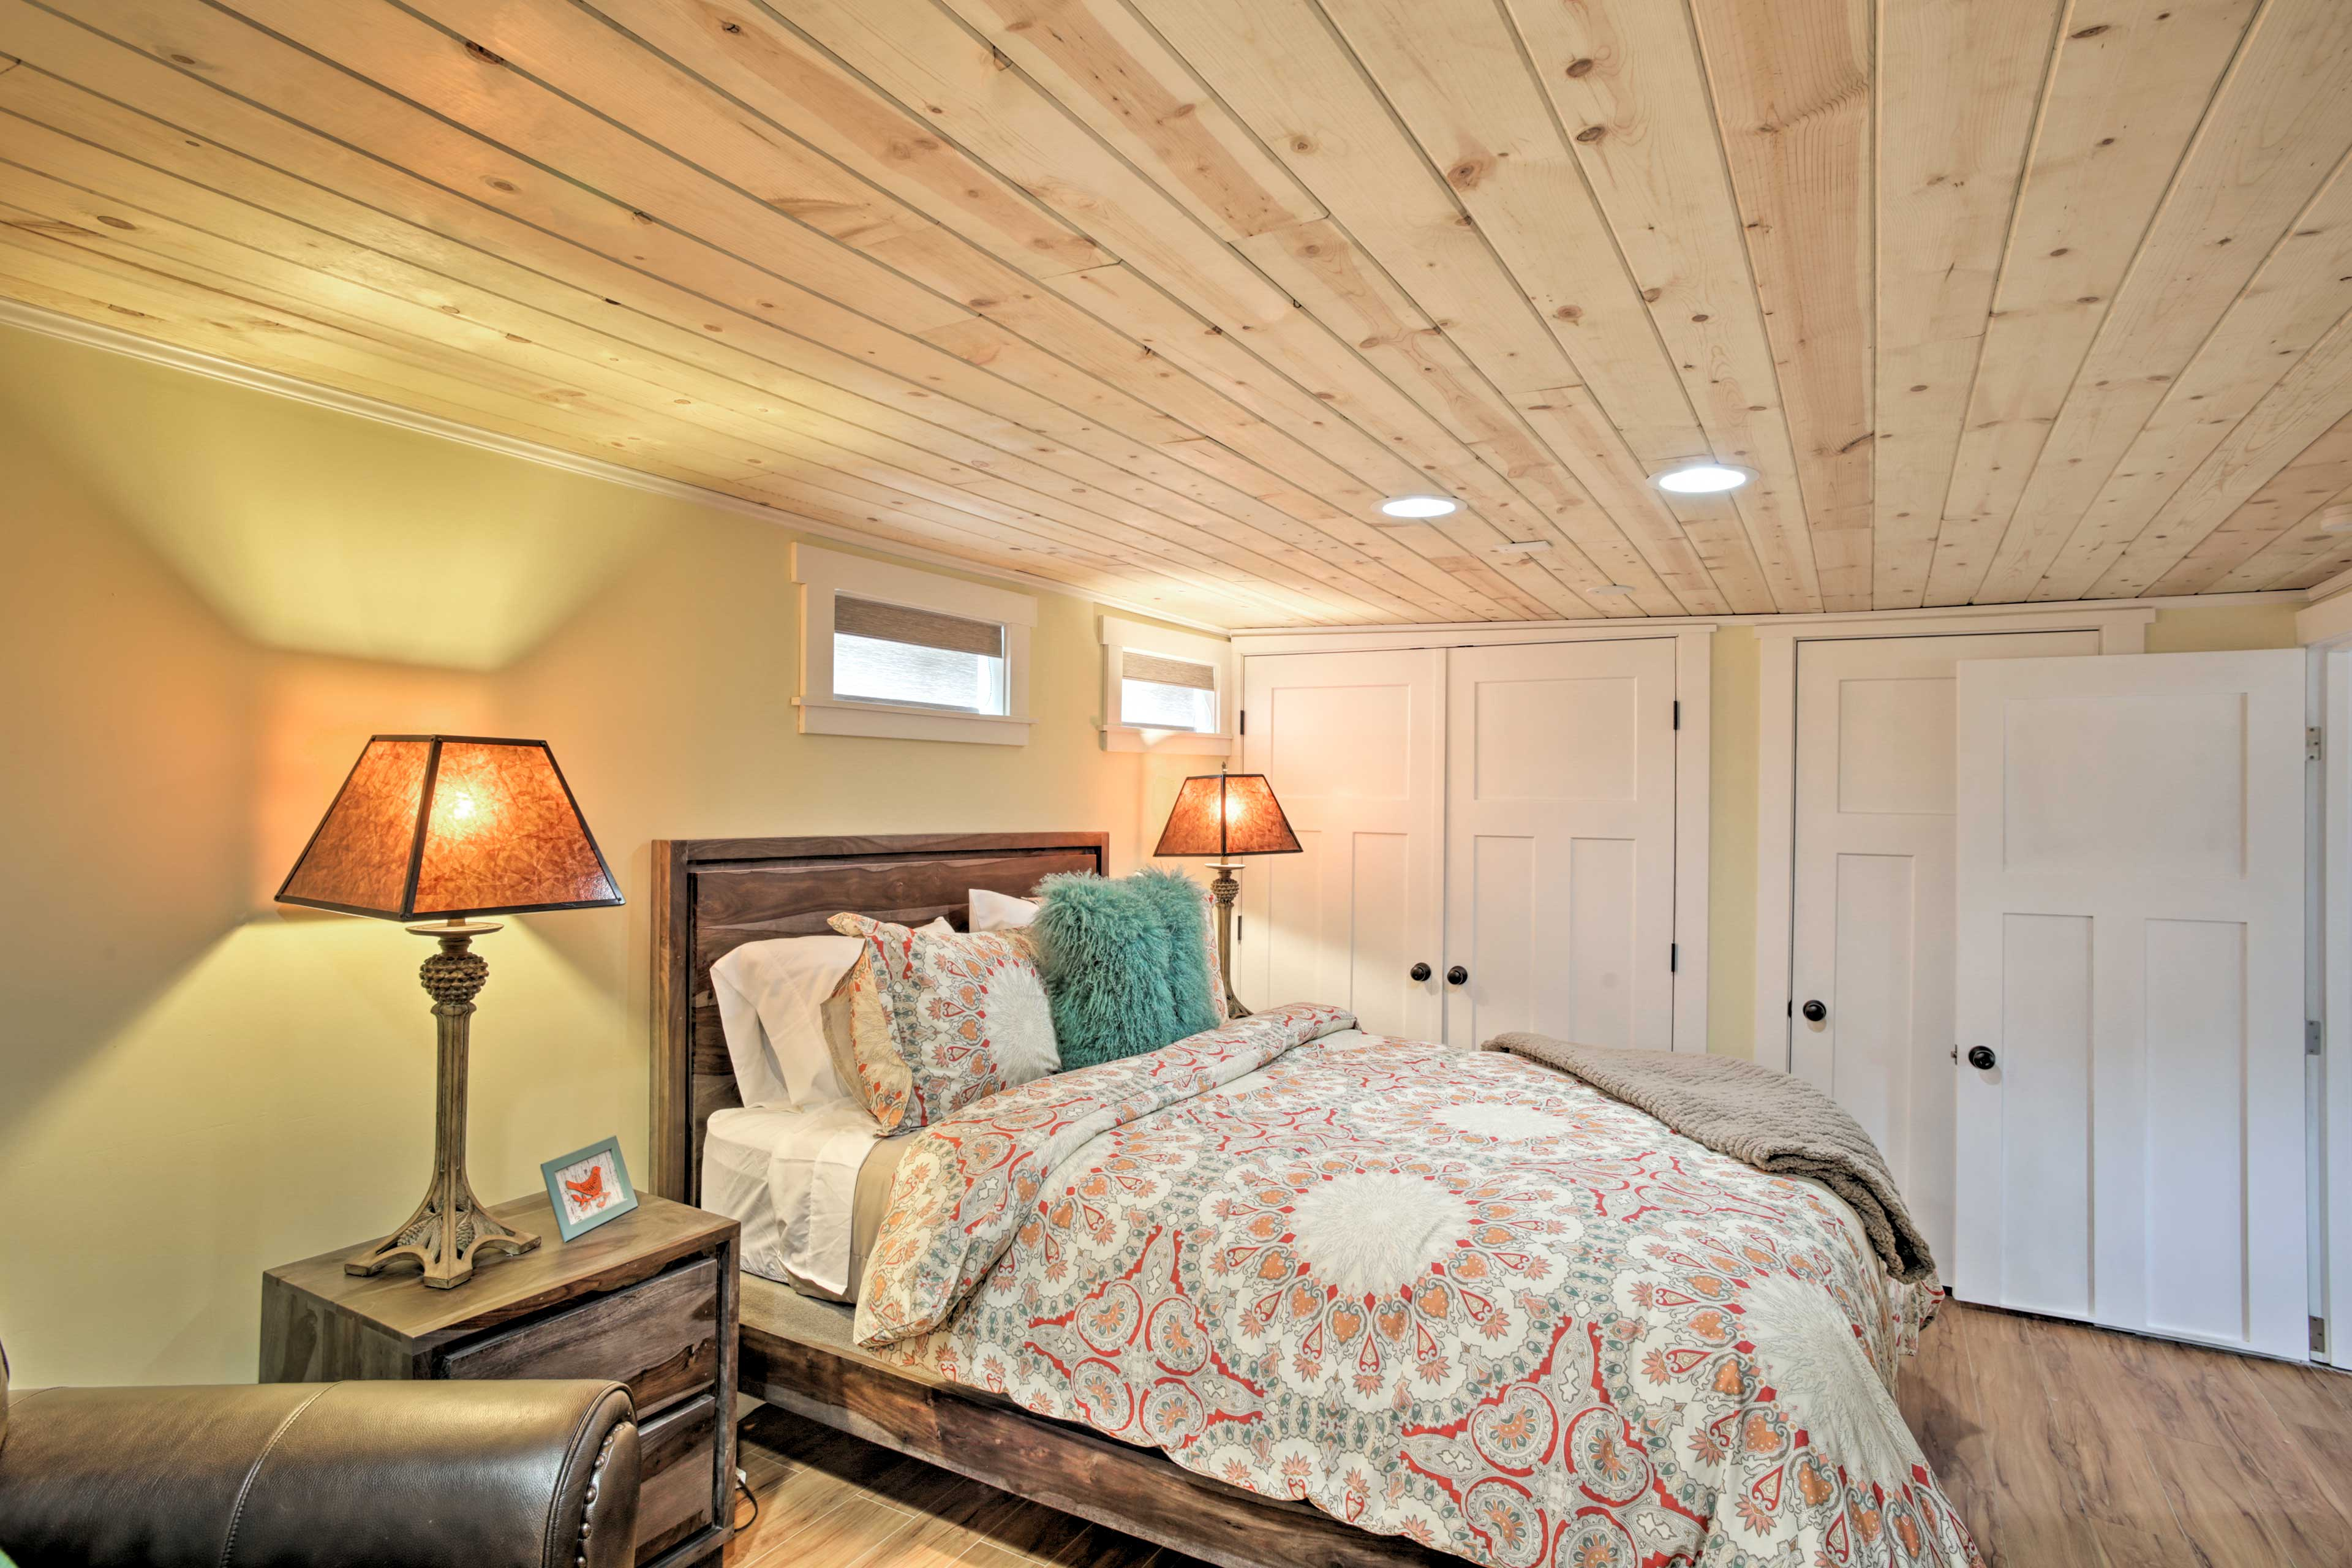 Double closets and a reading chair provide additional comforts.